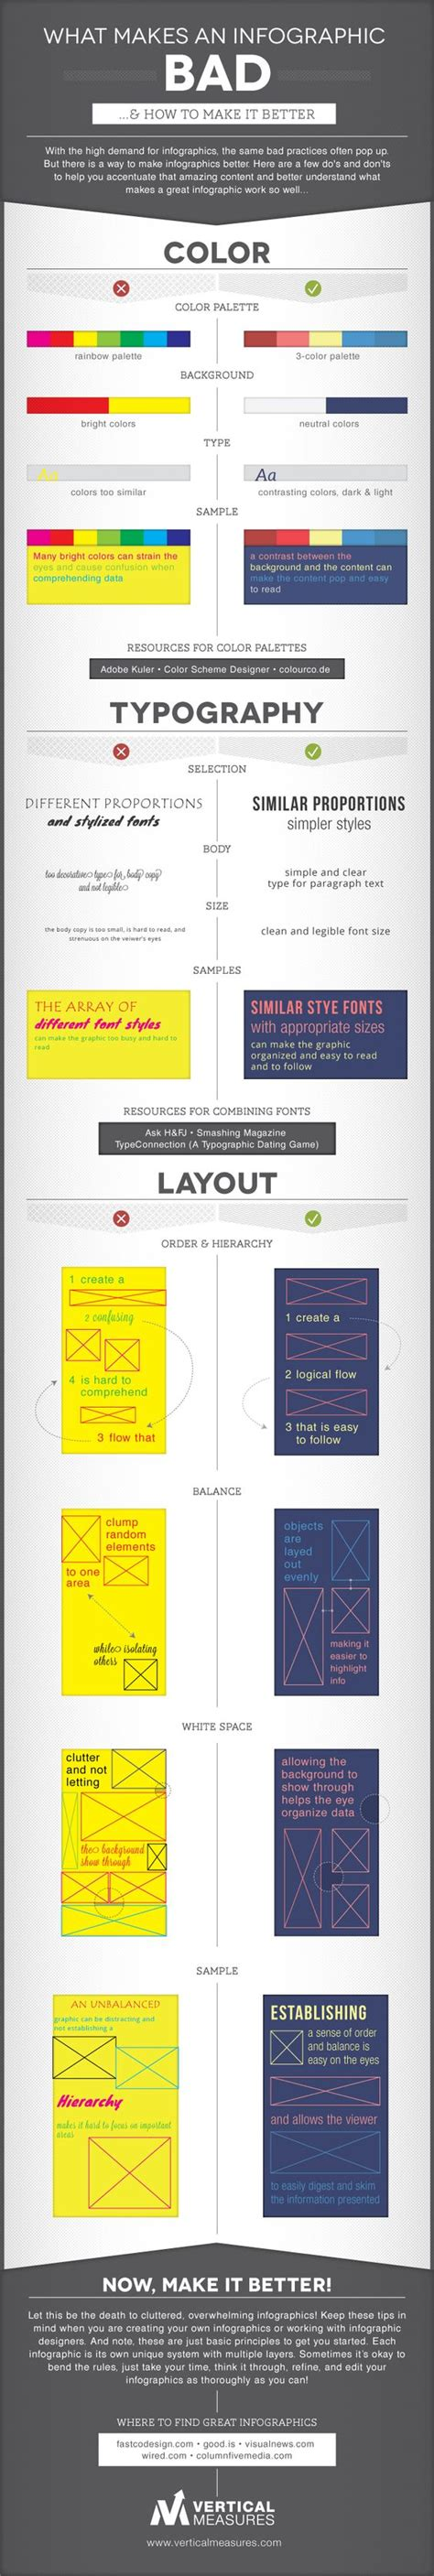 infographics how to print better what makes an infographic bad and how to make it better graphics make an infographic and design